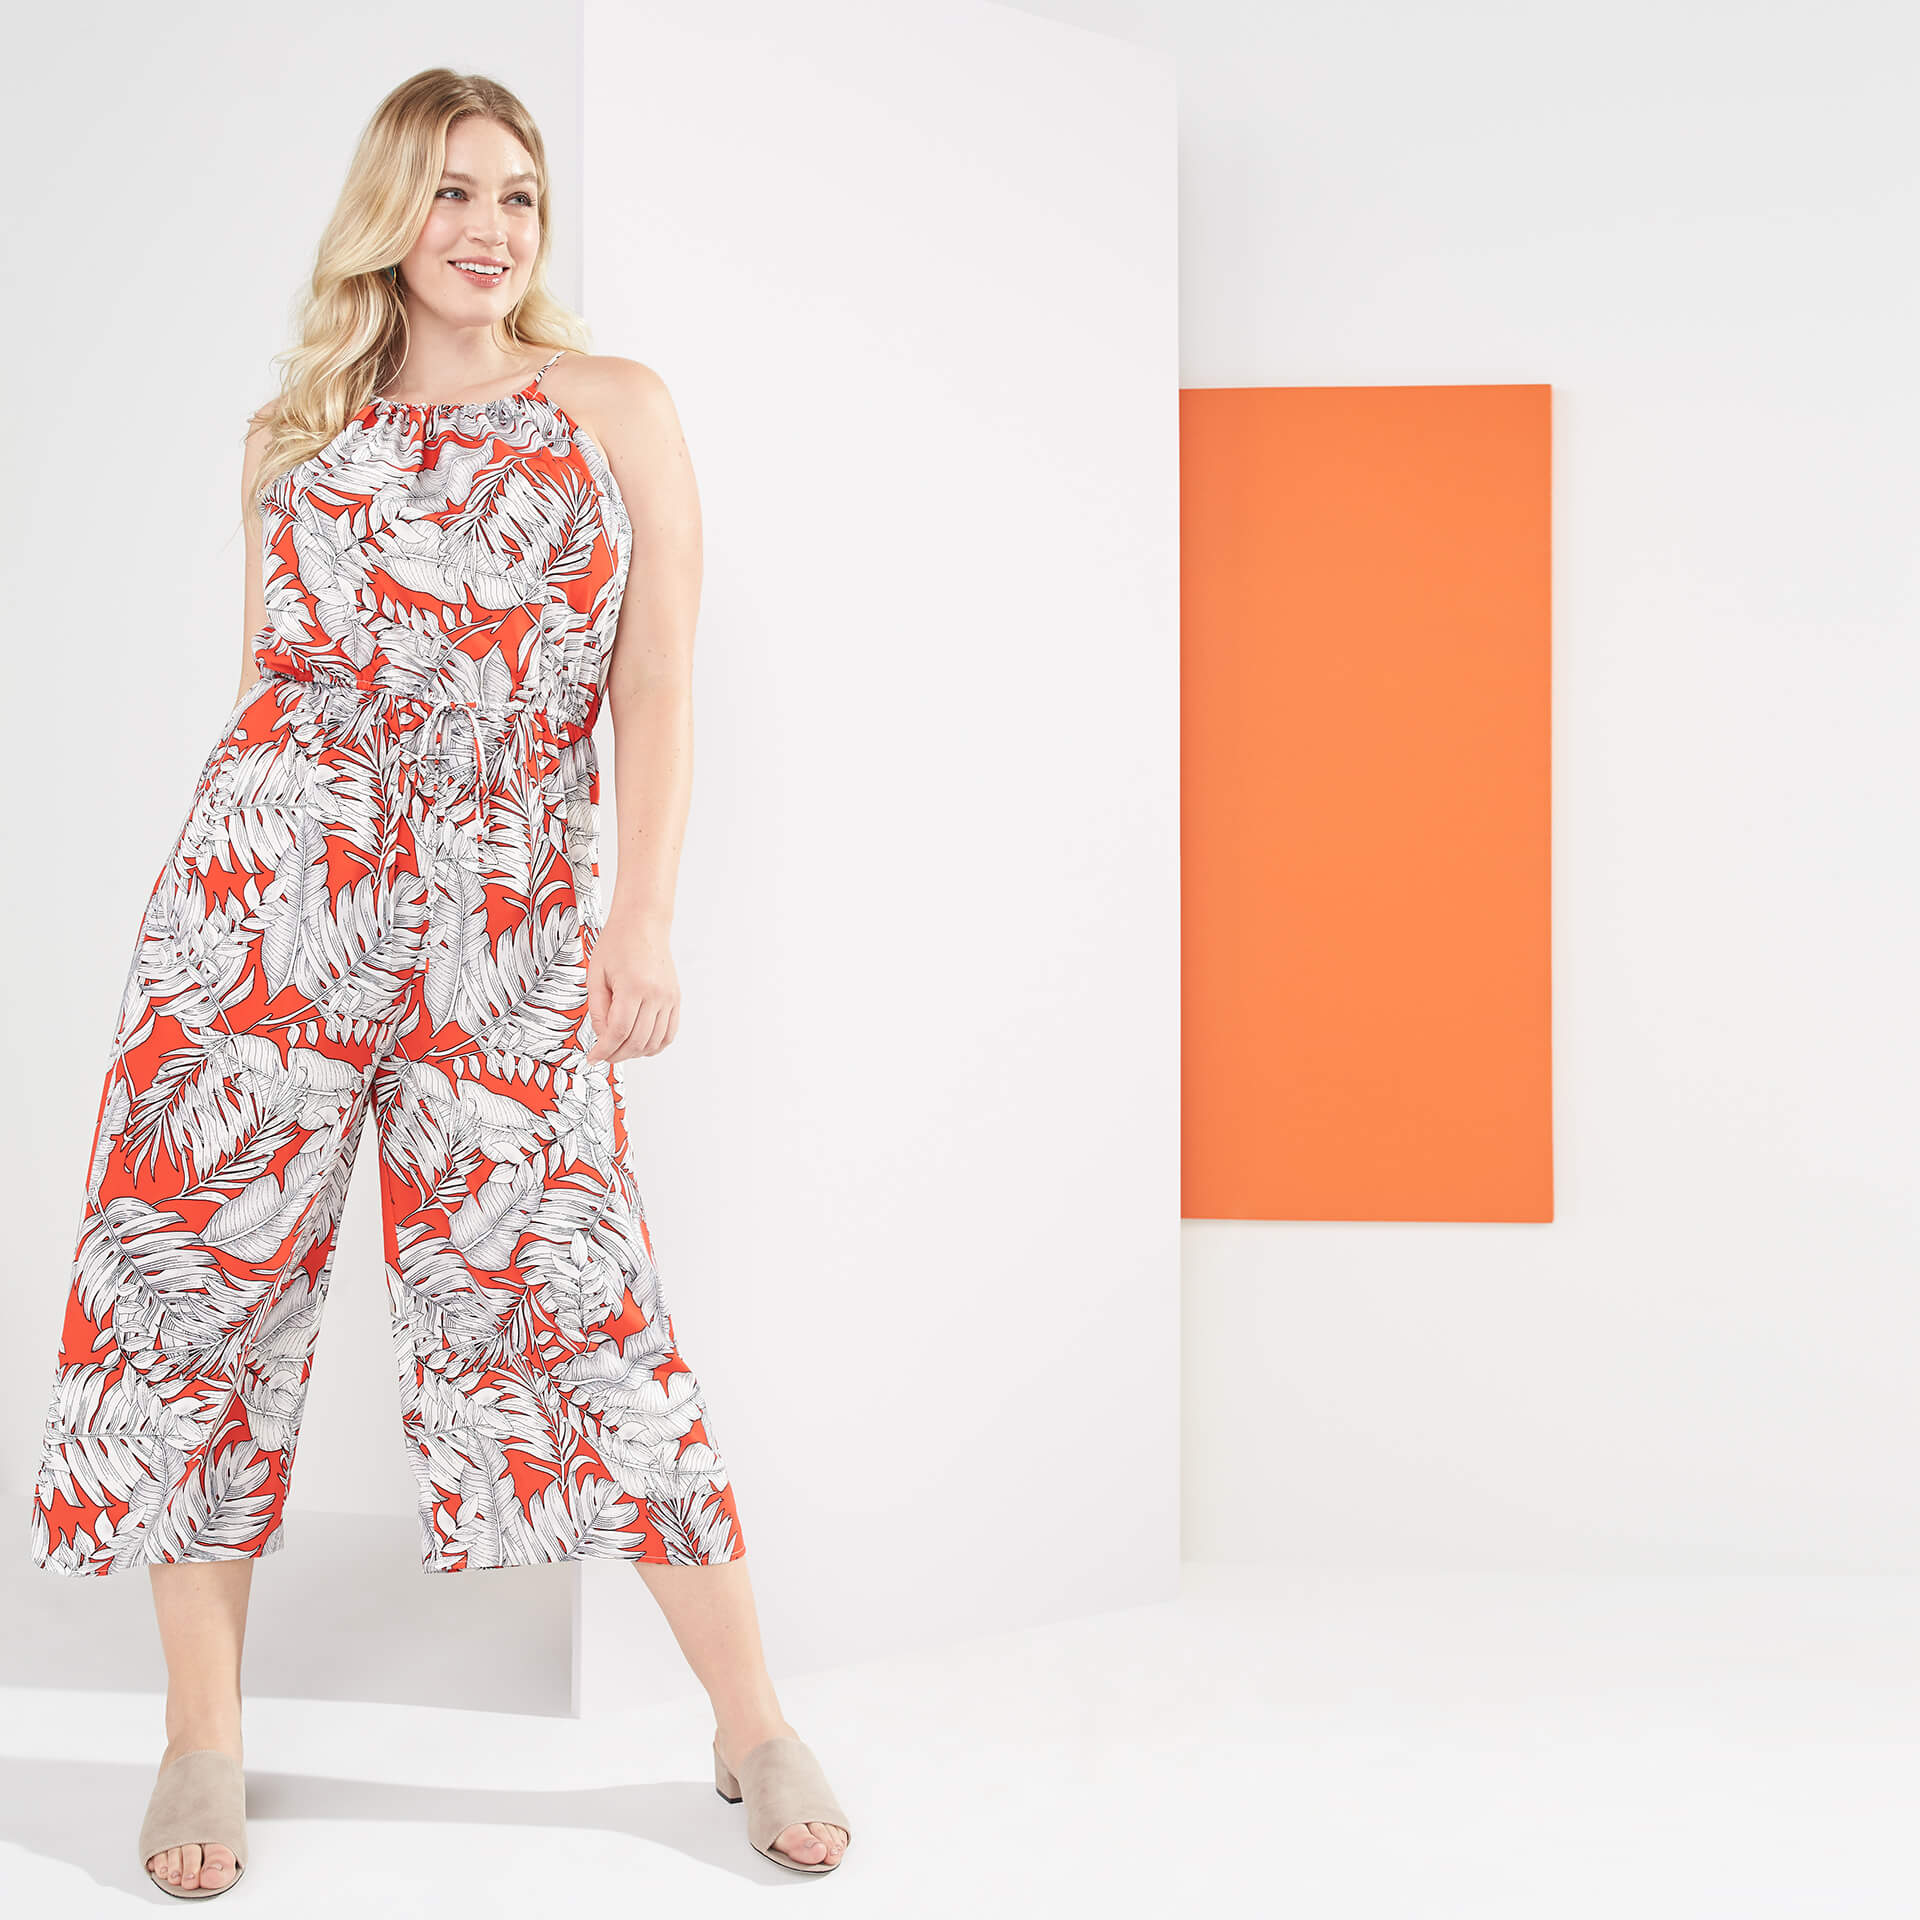 Choosing a jumpsuit for the summer